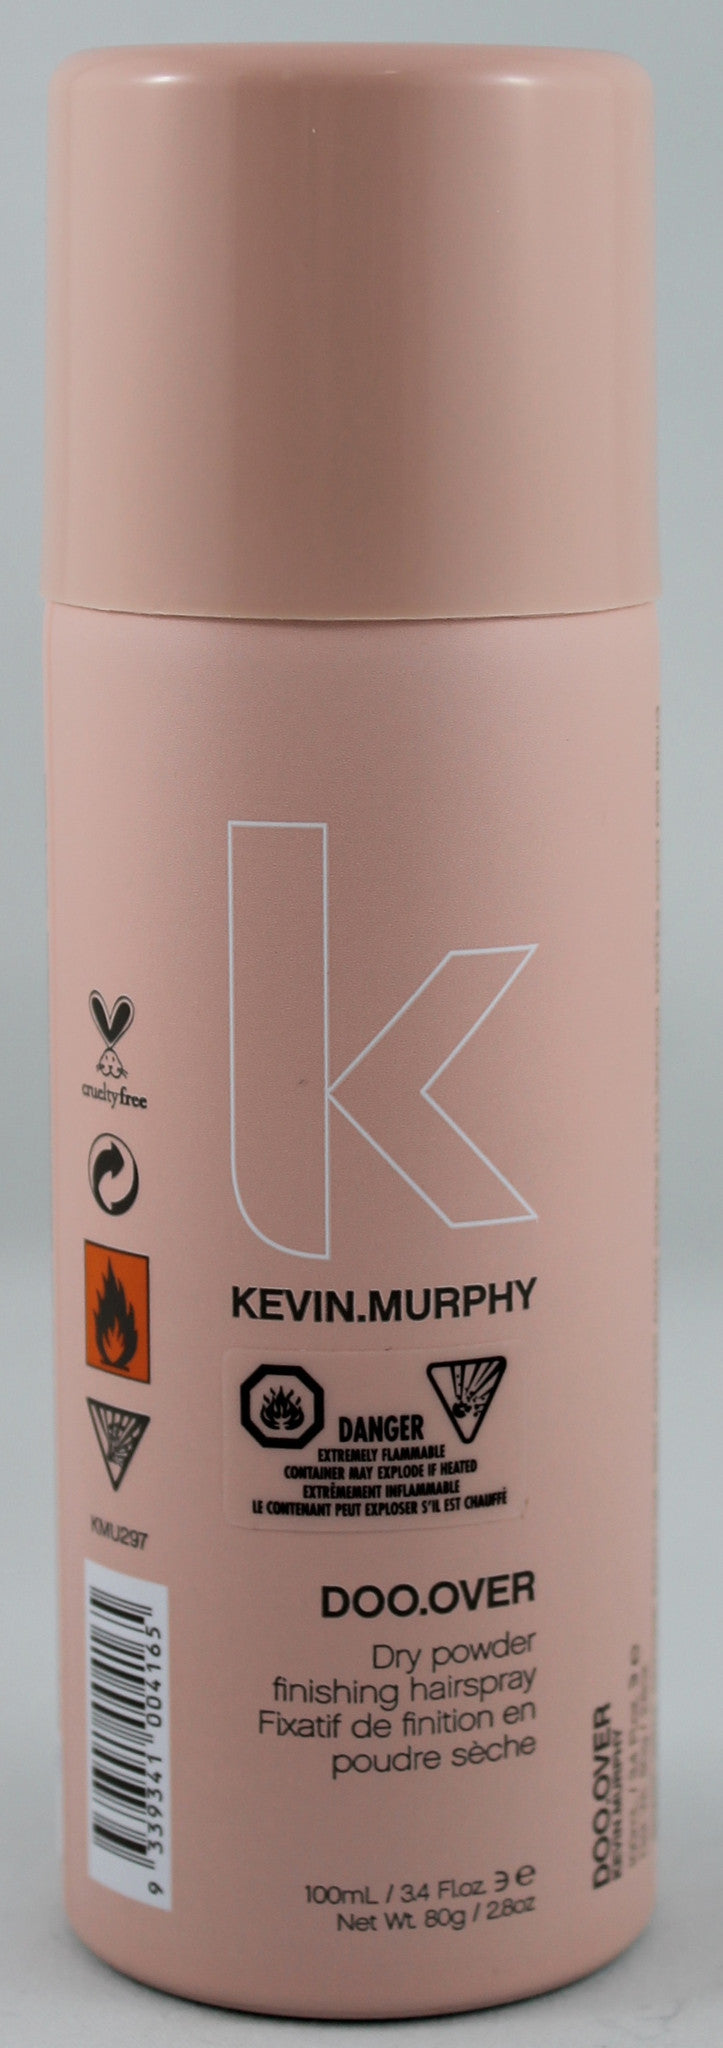 KEVIN MURPHY DOO OVER DRY POWDER- TRAVEL SIZE